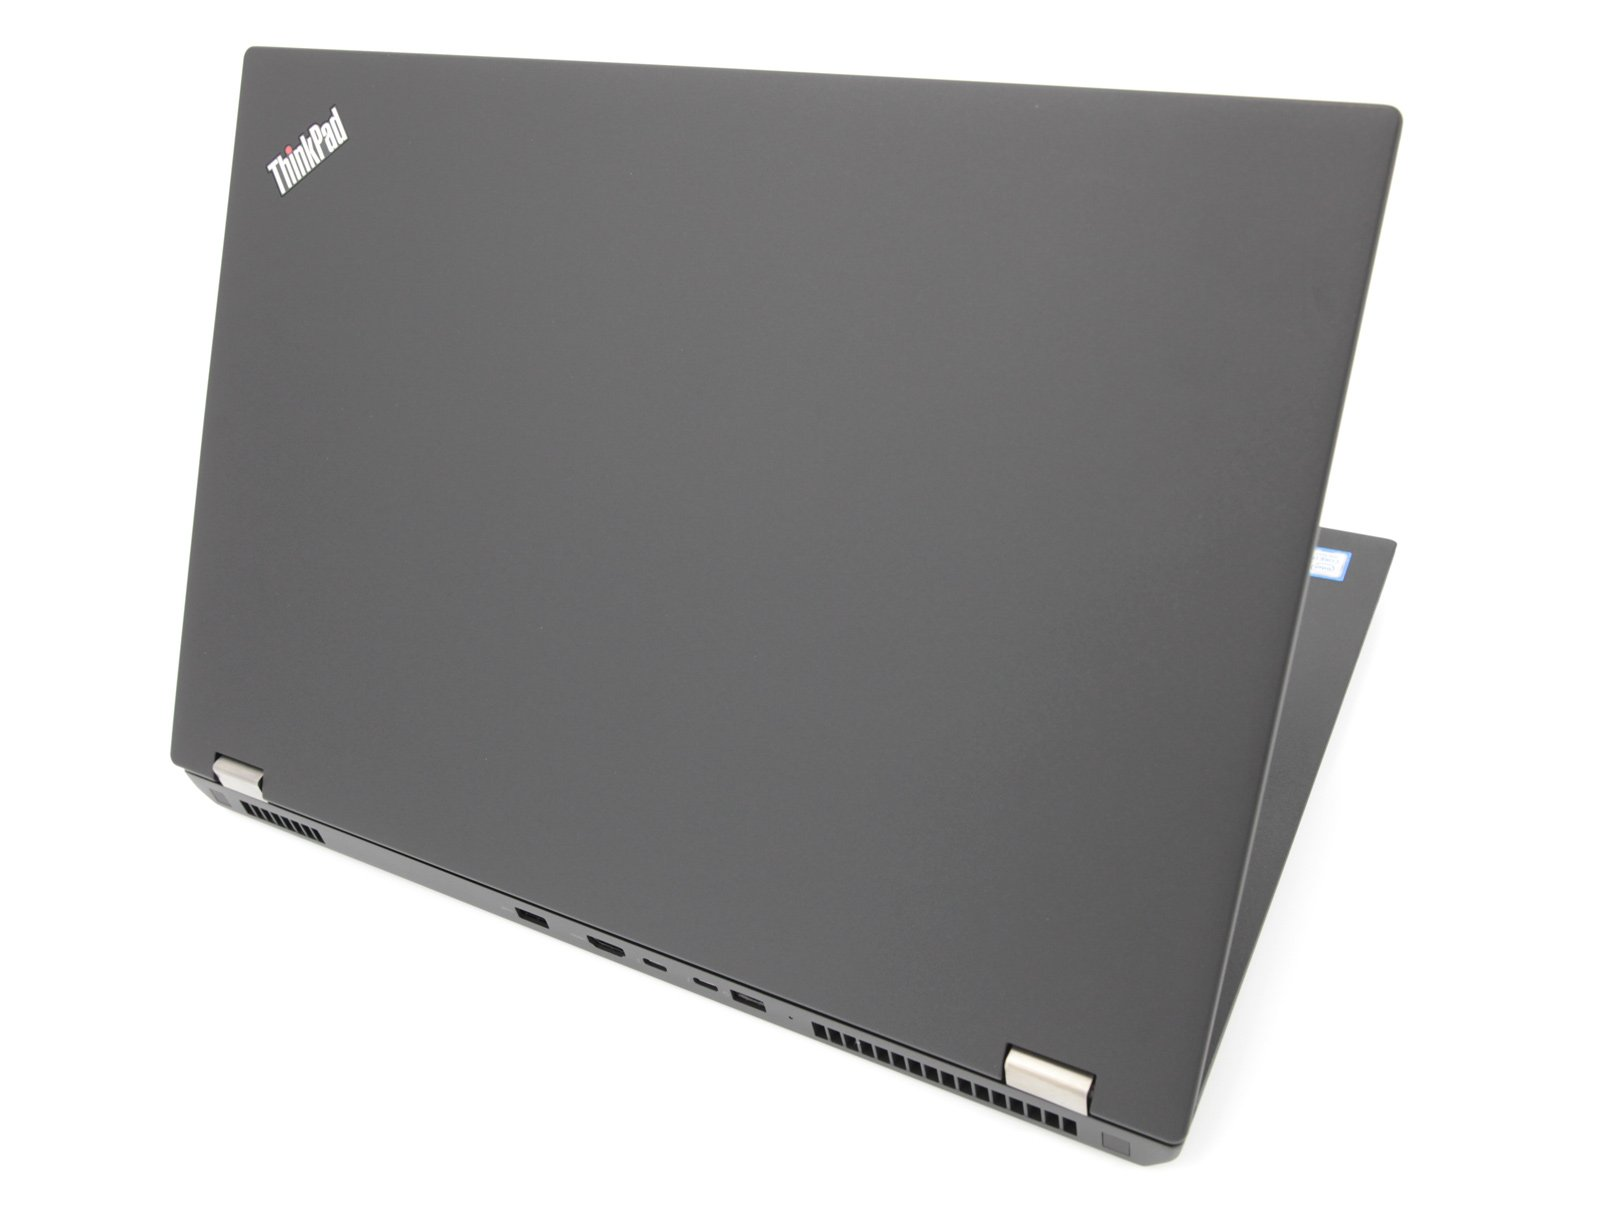 Lenovo ThinkPad P73 17.3